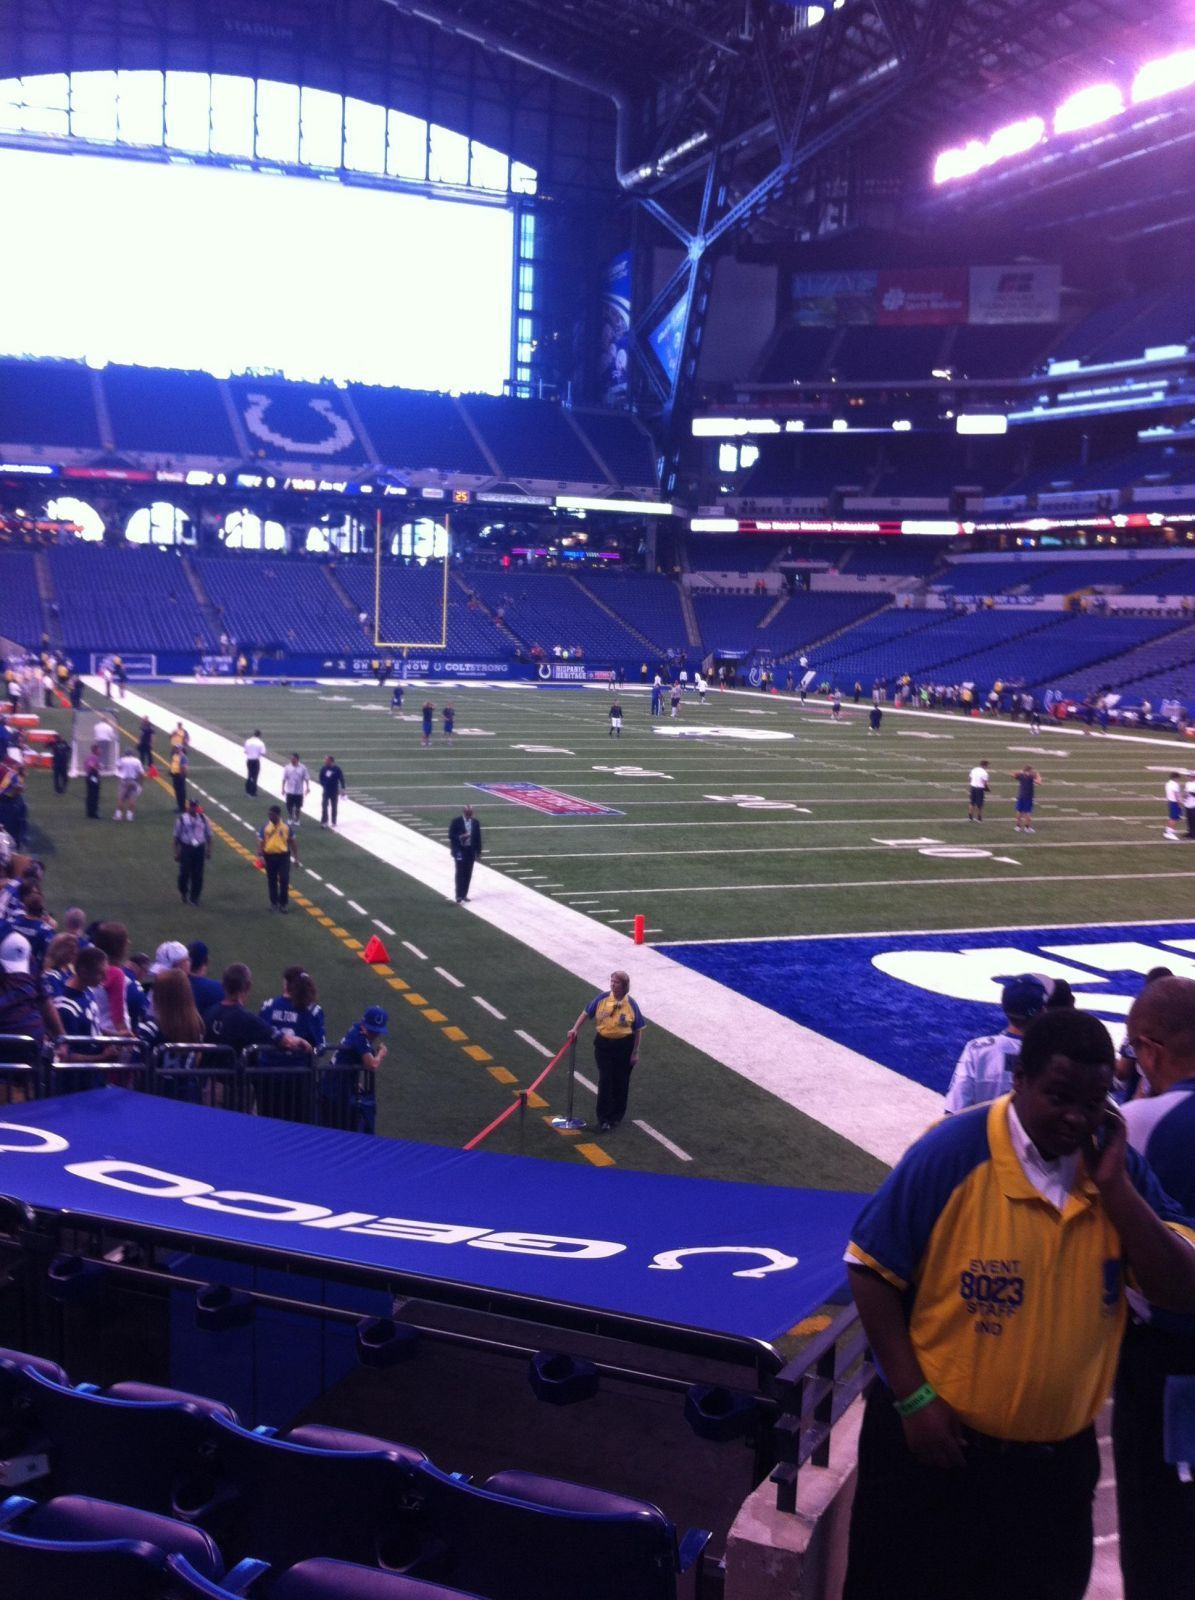 Indianapolis Colts Seat View for Lucas Oil Stadium Section 132, Row 12, Seat 3